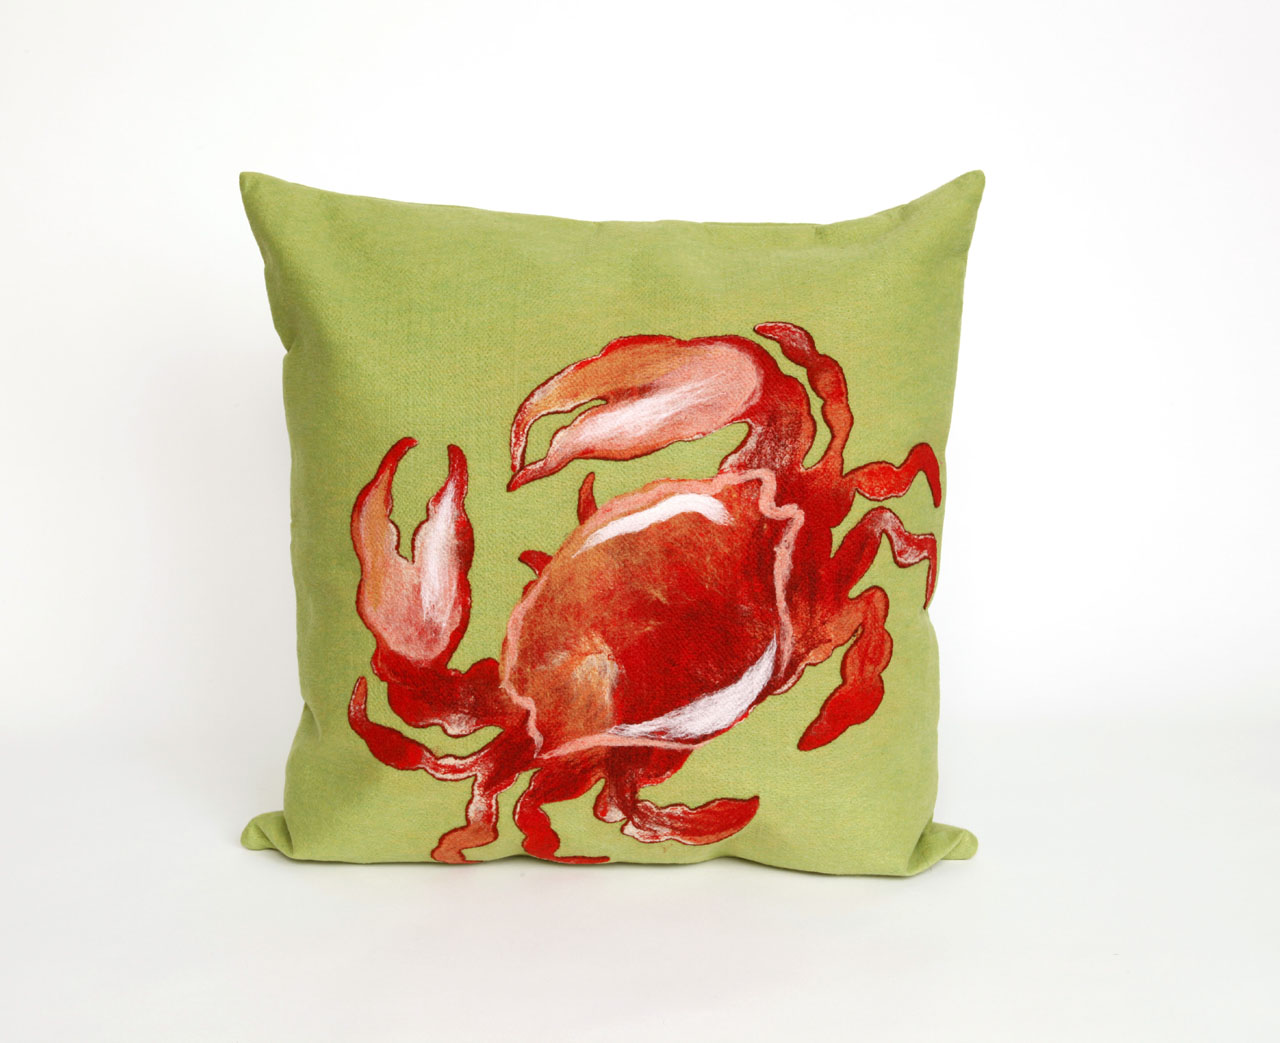 Lamontage crab red pillow - vision 2